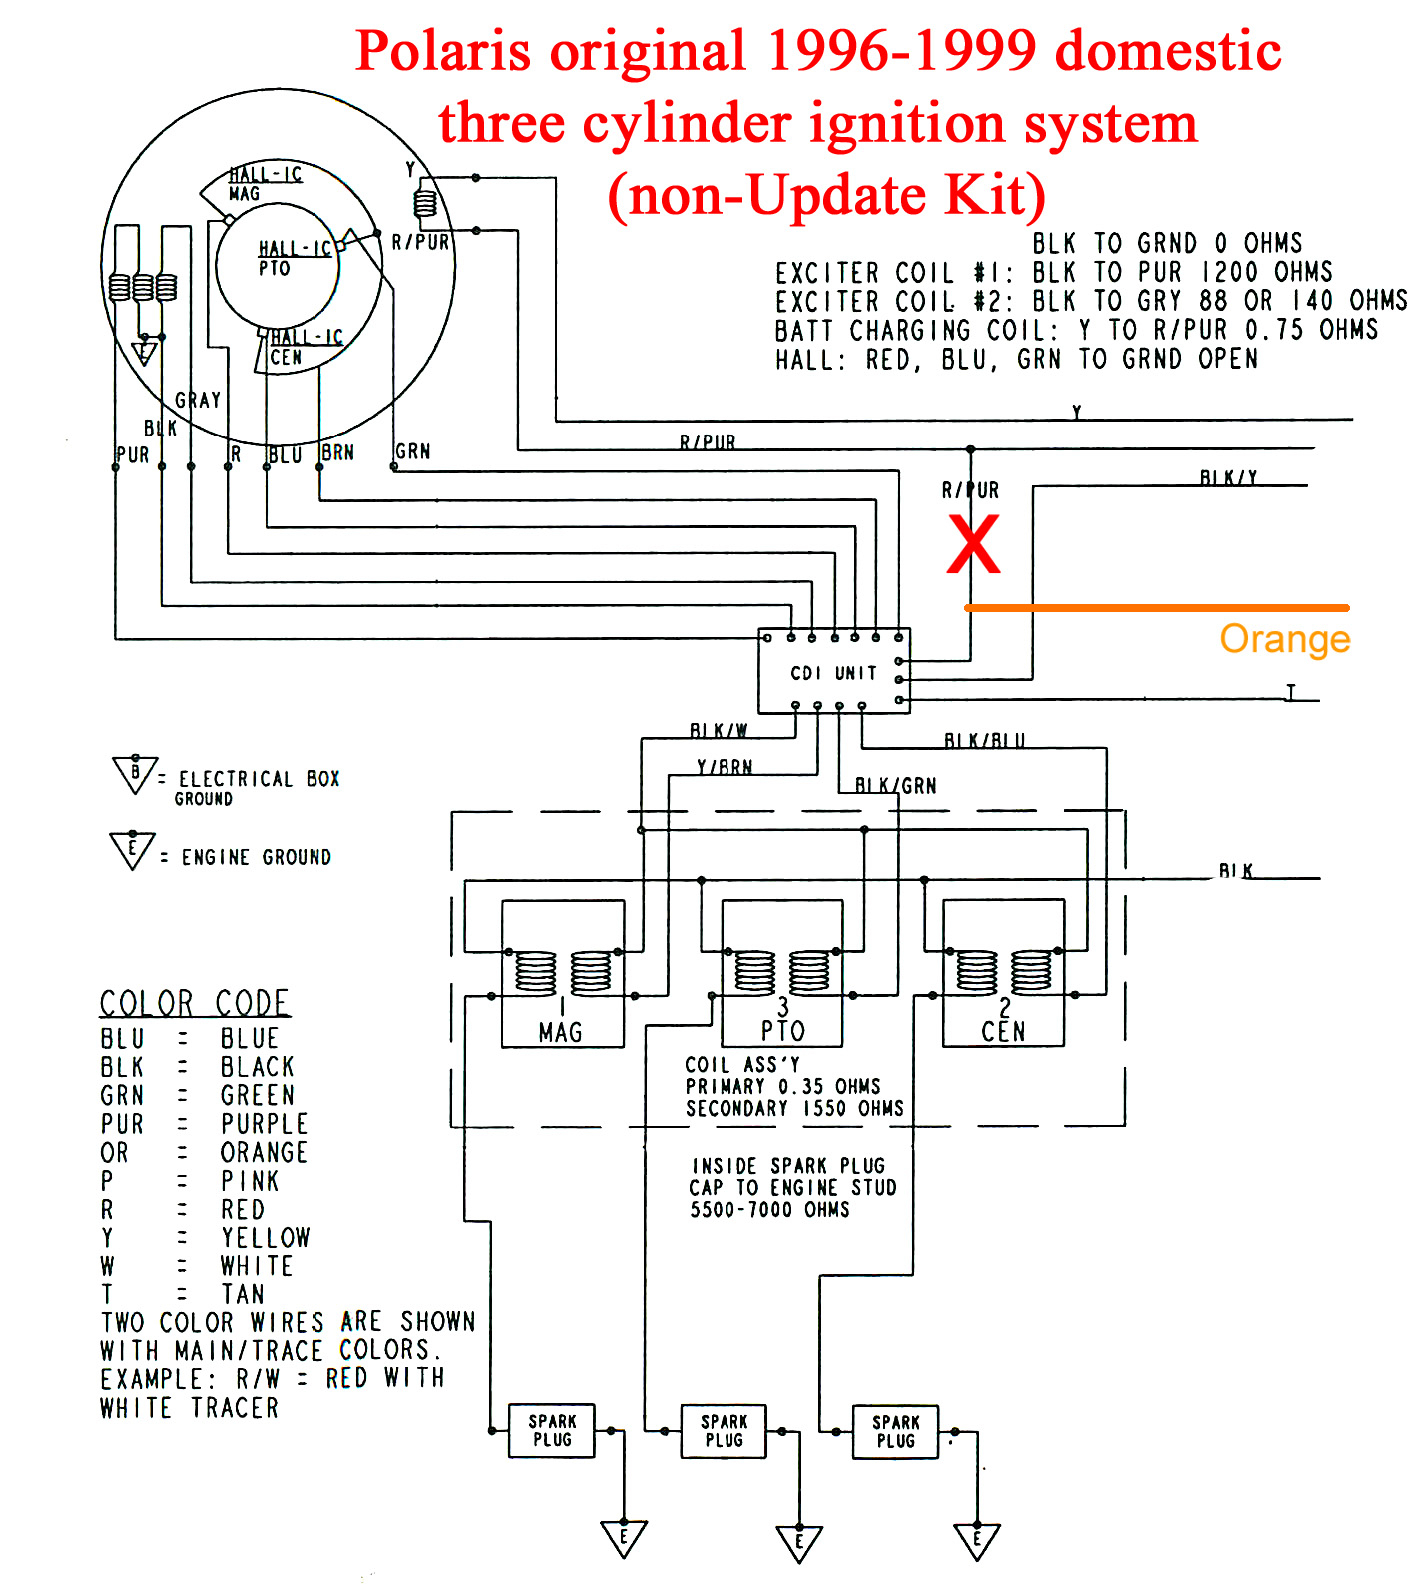 Universal Wire Ignition Switch Wiring Diagram on universal headlight switch wiring, universal ignition starter switch, 4 pin ignition switch wiring diagram, 4 position ignition switch wiring diagram, clark forklift ignition switch diagram,